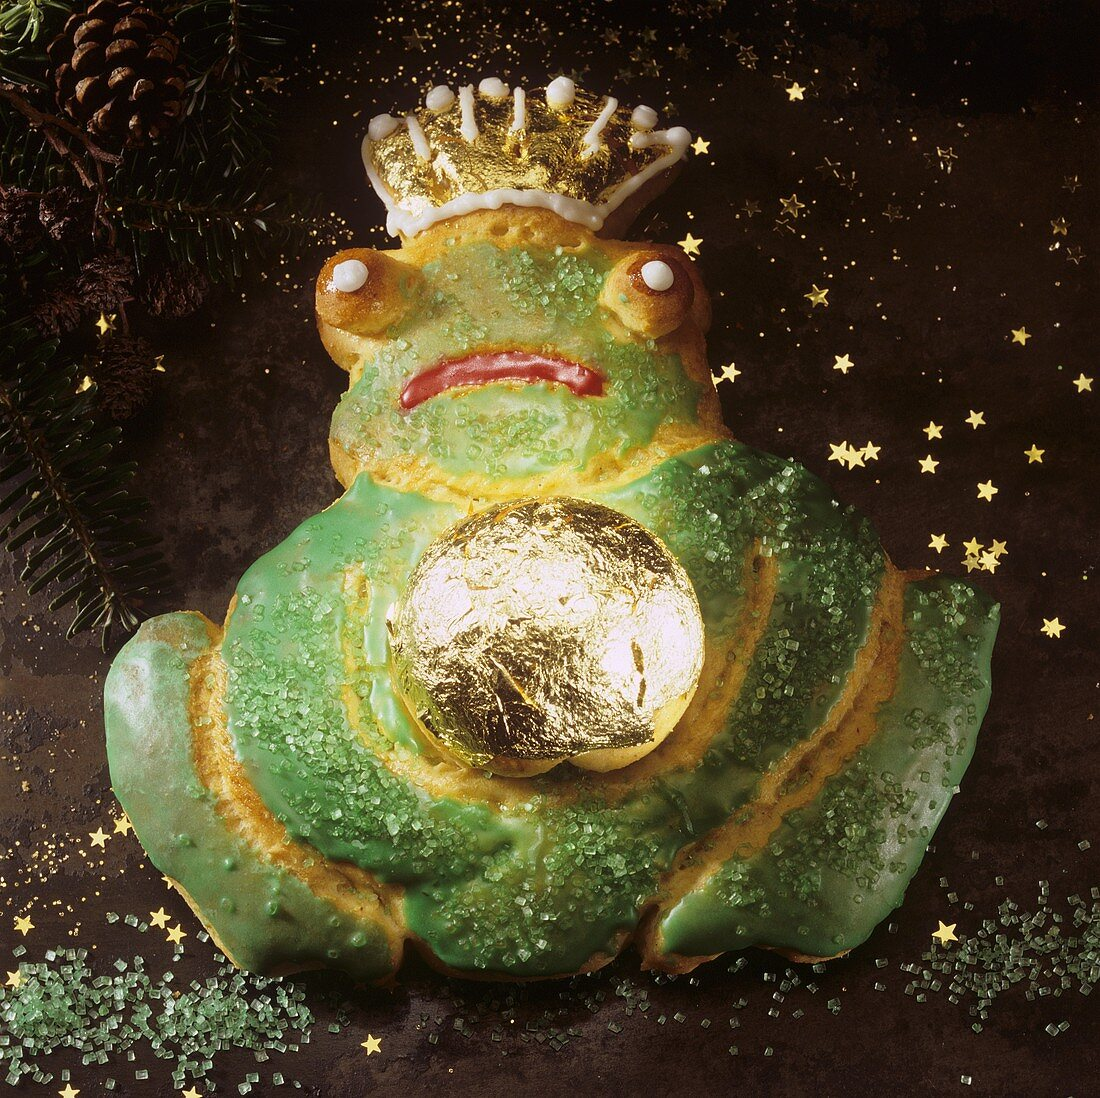 Baked Frog King with glitter stars